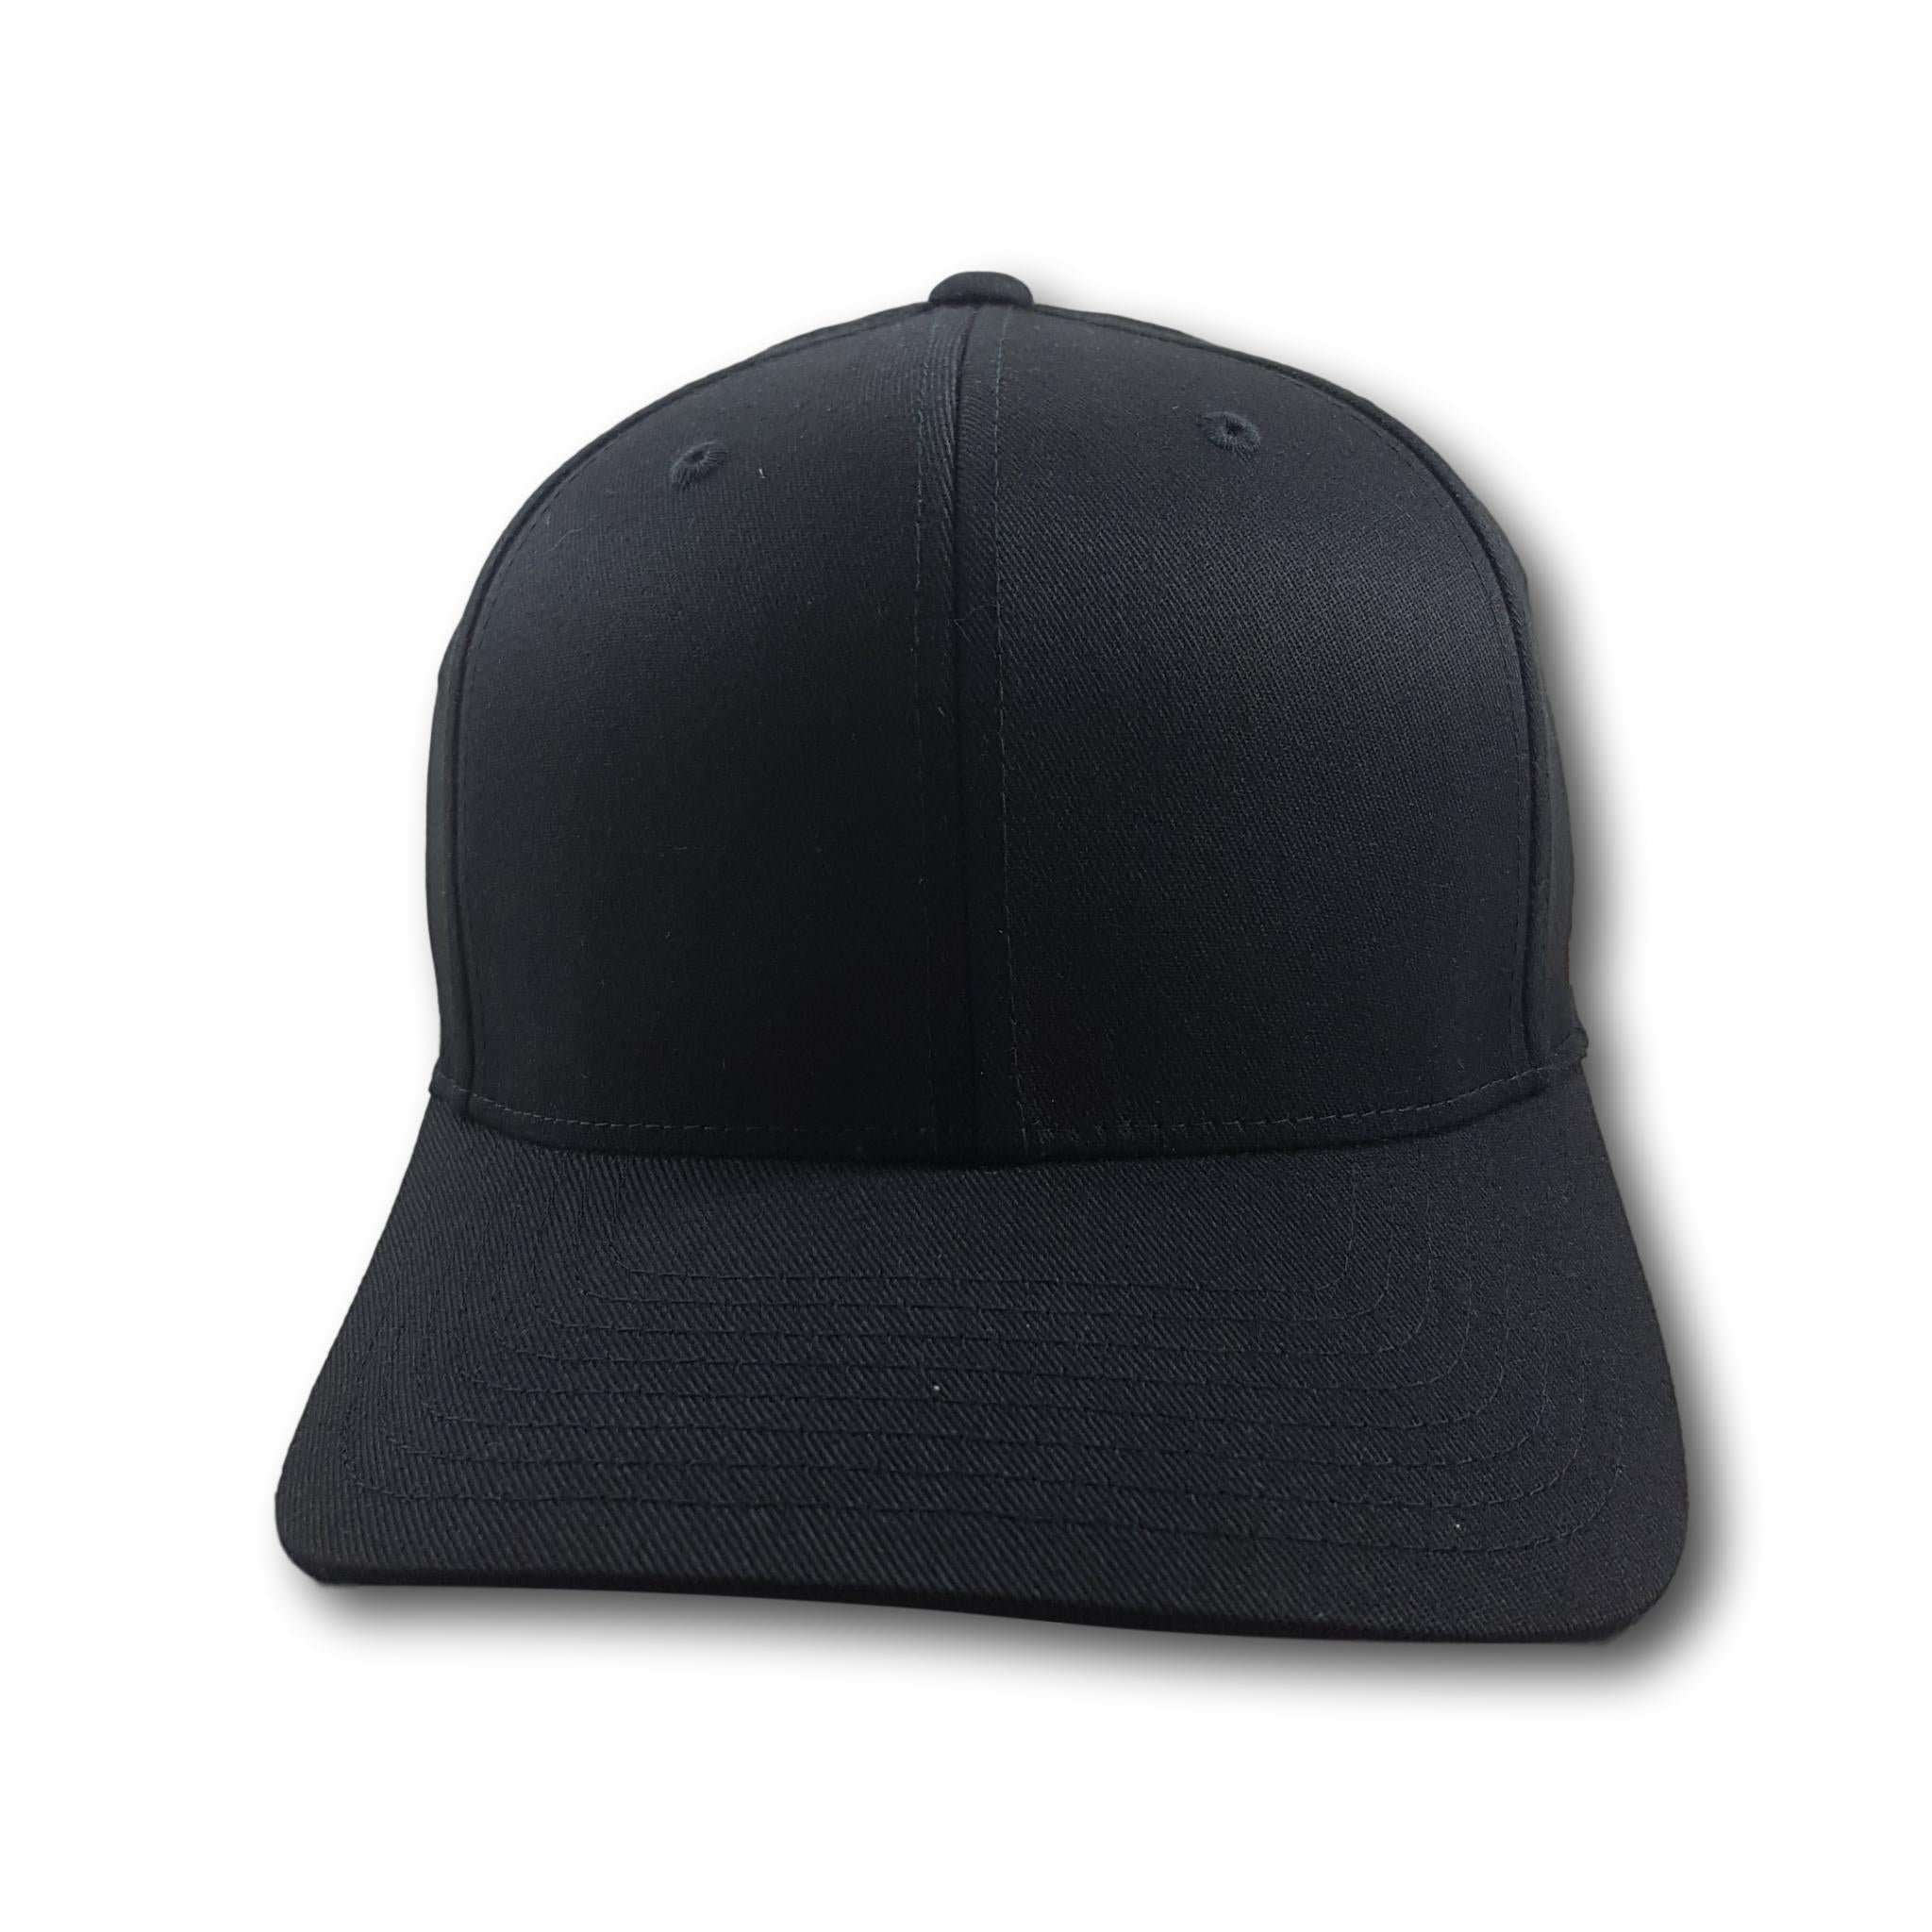 7677fe1c0f4b Flexfit Worn By The World Fitted Cap Black Gold